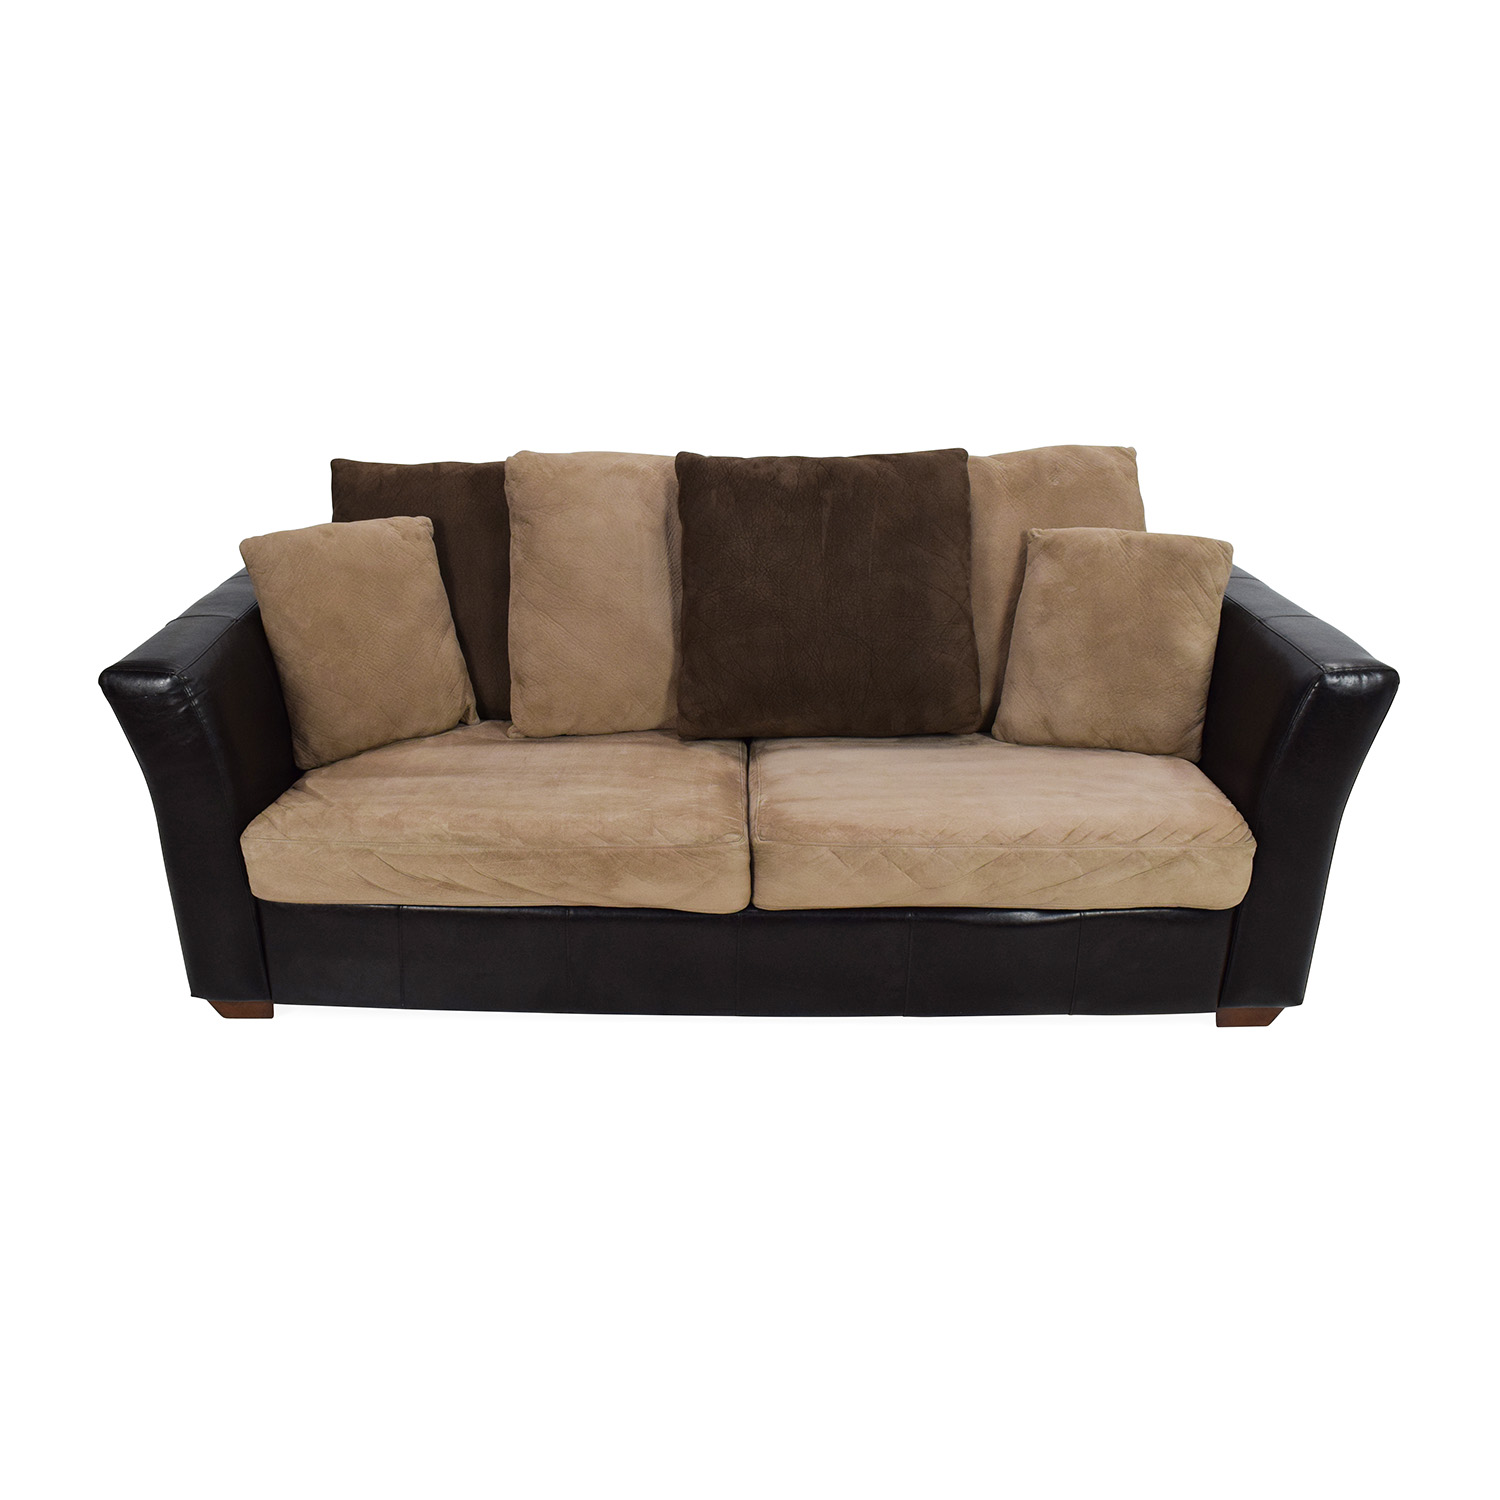 Jennifer convertibles sleeper sofa jennifer sleeper sofas for Sectional sofa jennifer convertible